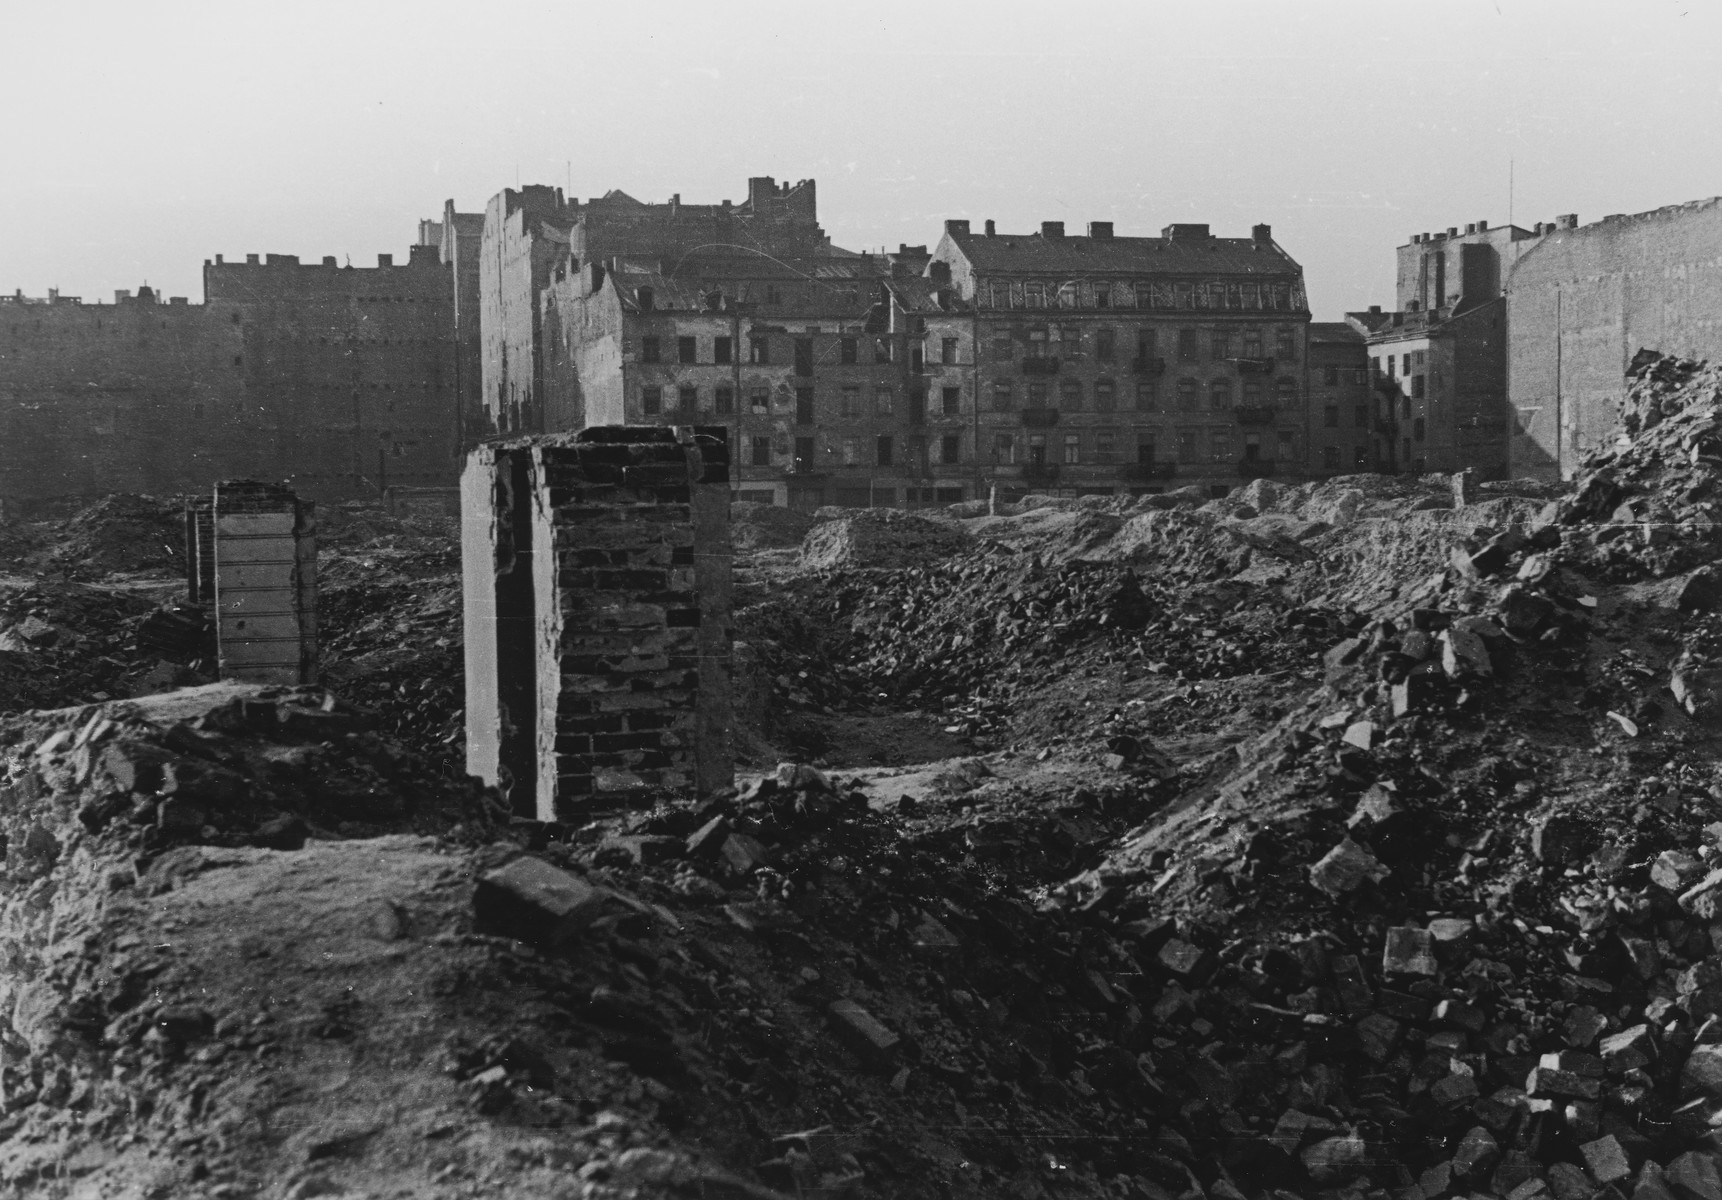 Clandestine photograph of the destroyed Warsaw ghetto.